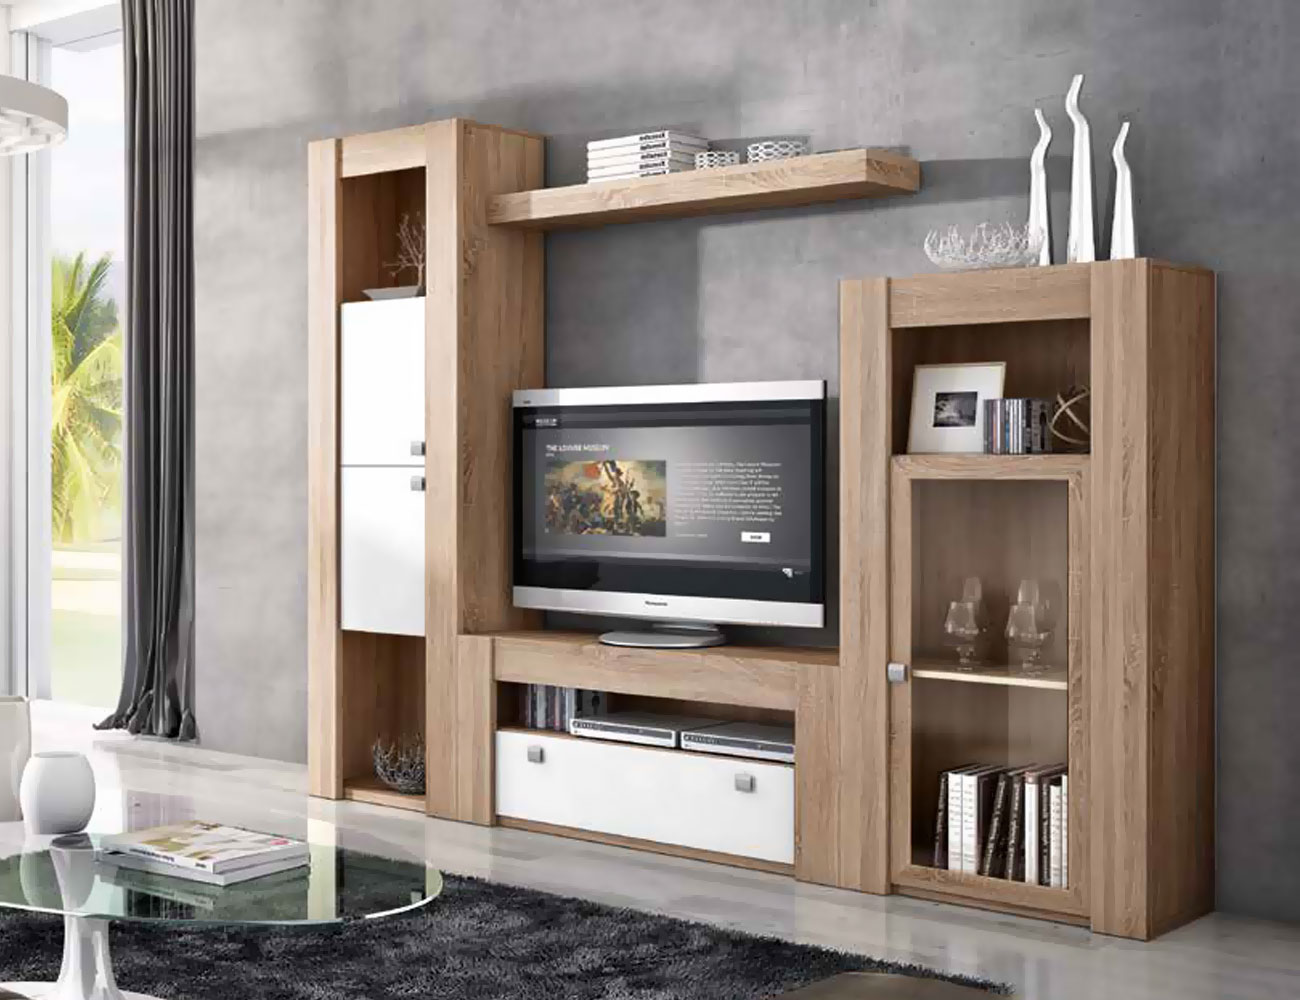 Mueble de sal n modular moderno en cambrian blanco 2276 for Mueble modular salon